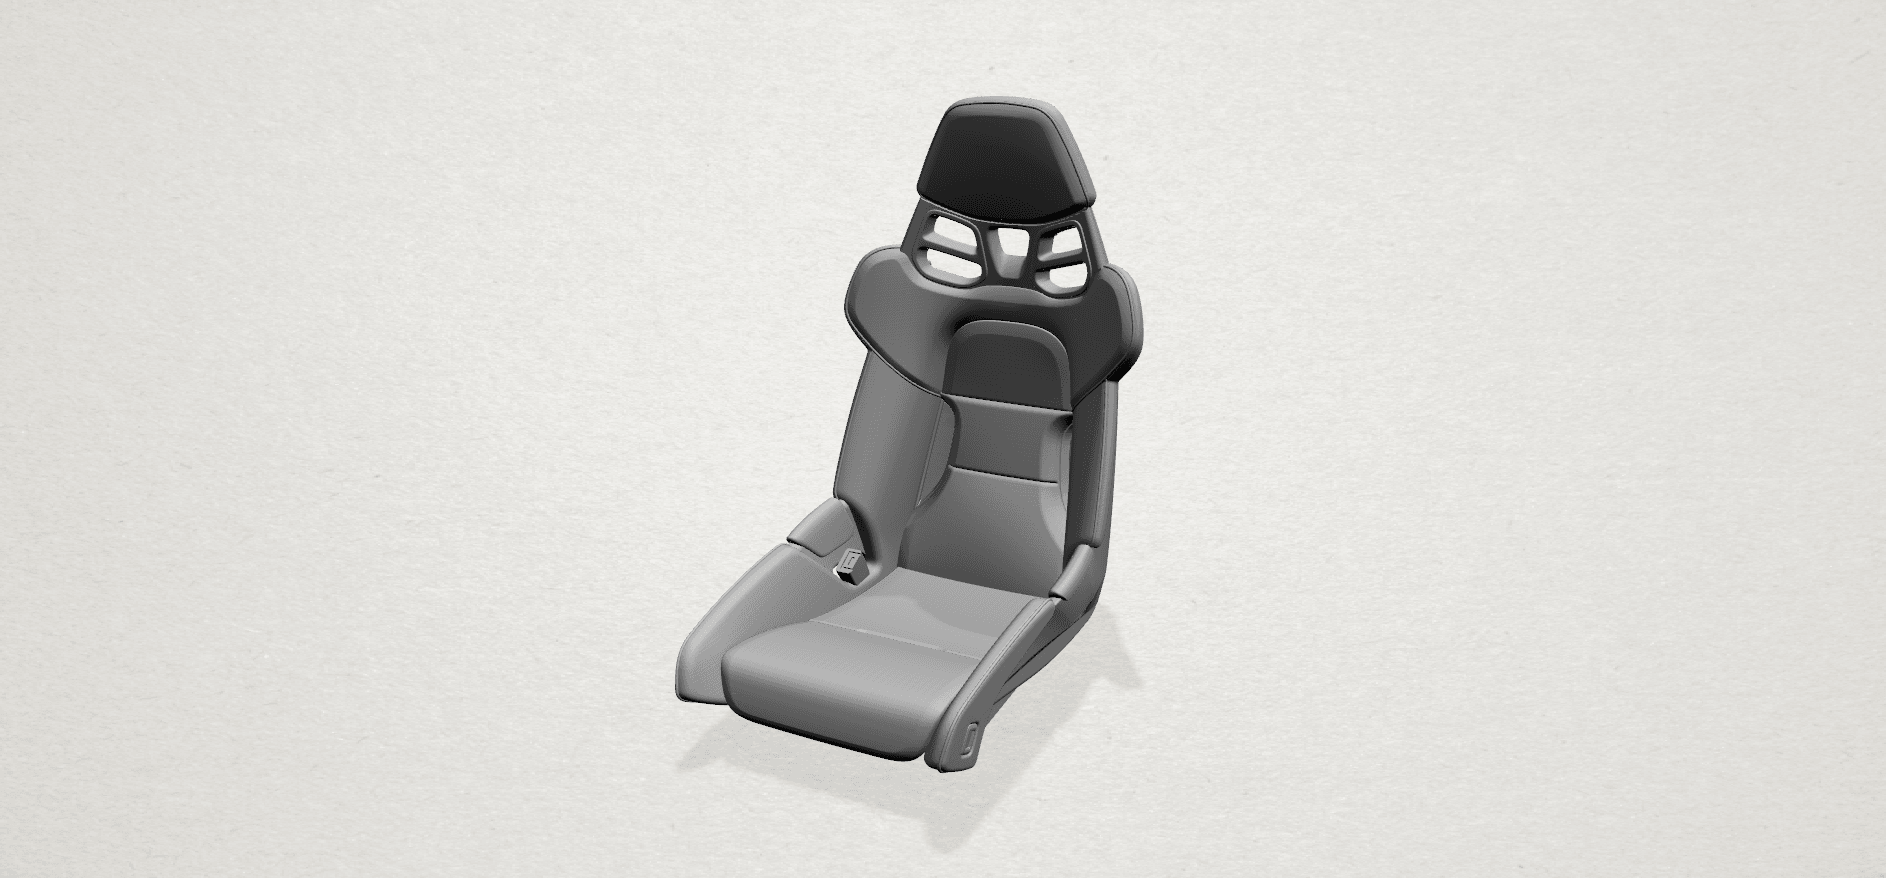 Seat -A01.png Download free STL file Car Seat • 3D printing design, GeorgesNikkei